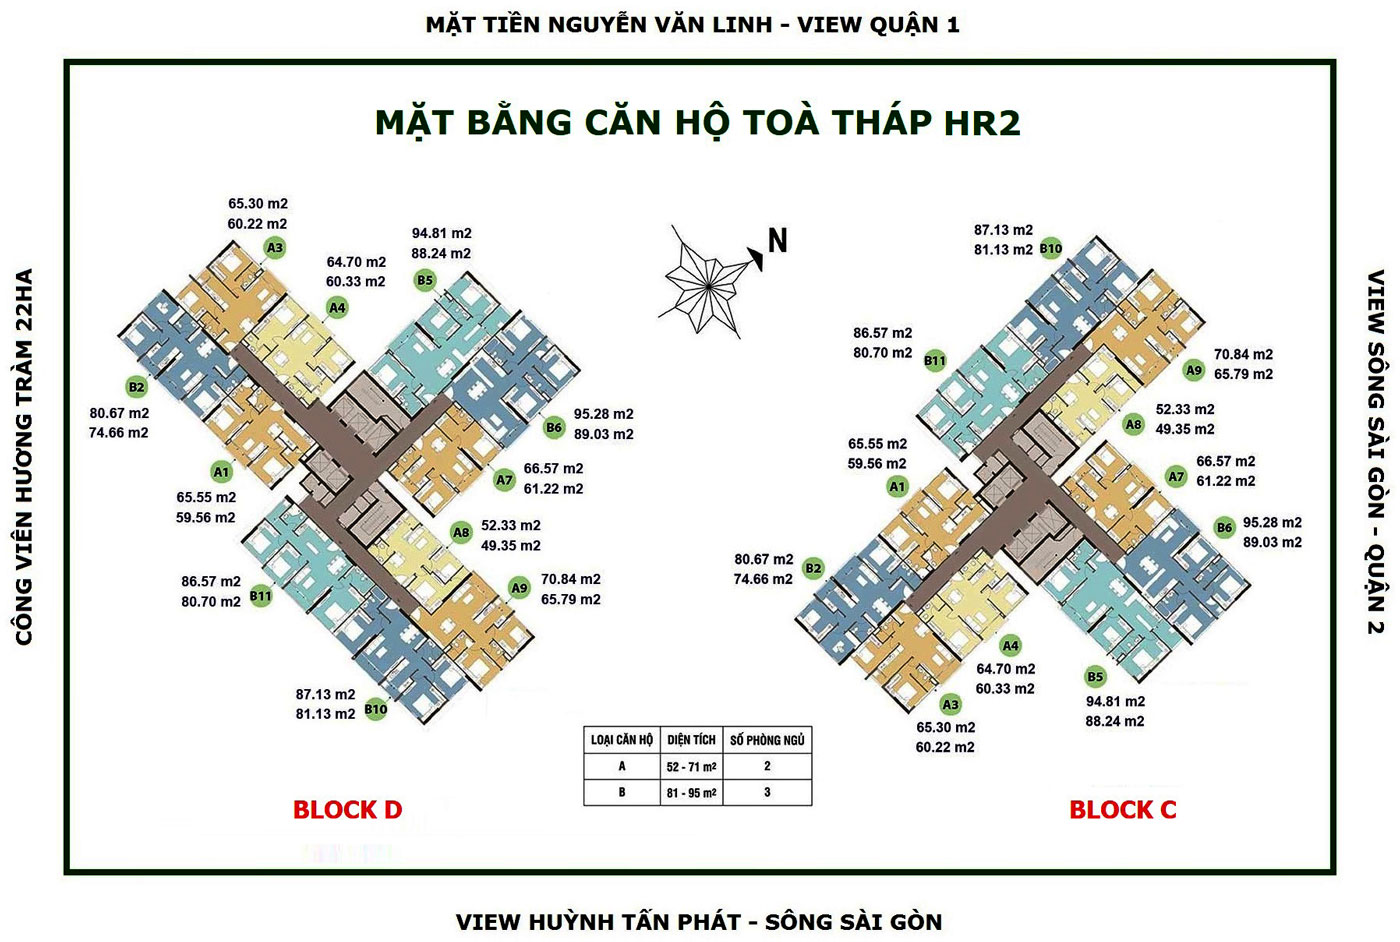 mat bang block hr2 du an can ho eco green sai gon